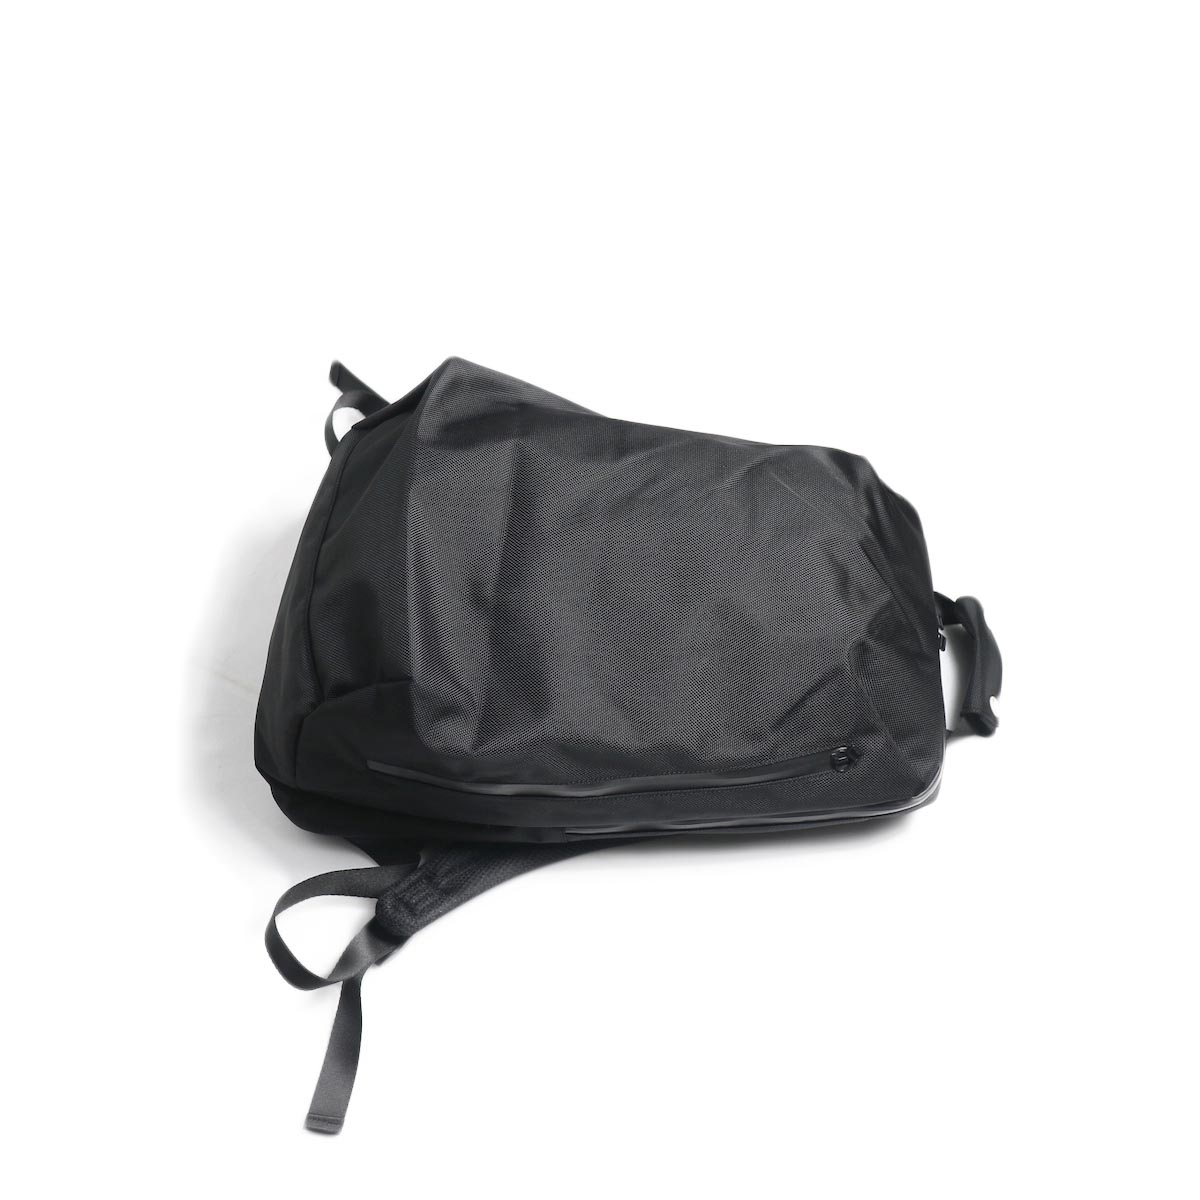 UNIVERSAL PRODUCTS / New Utility Bag -Black サイド